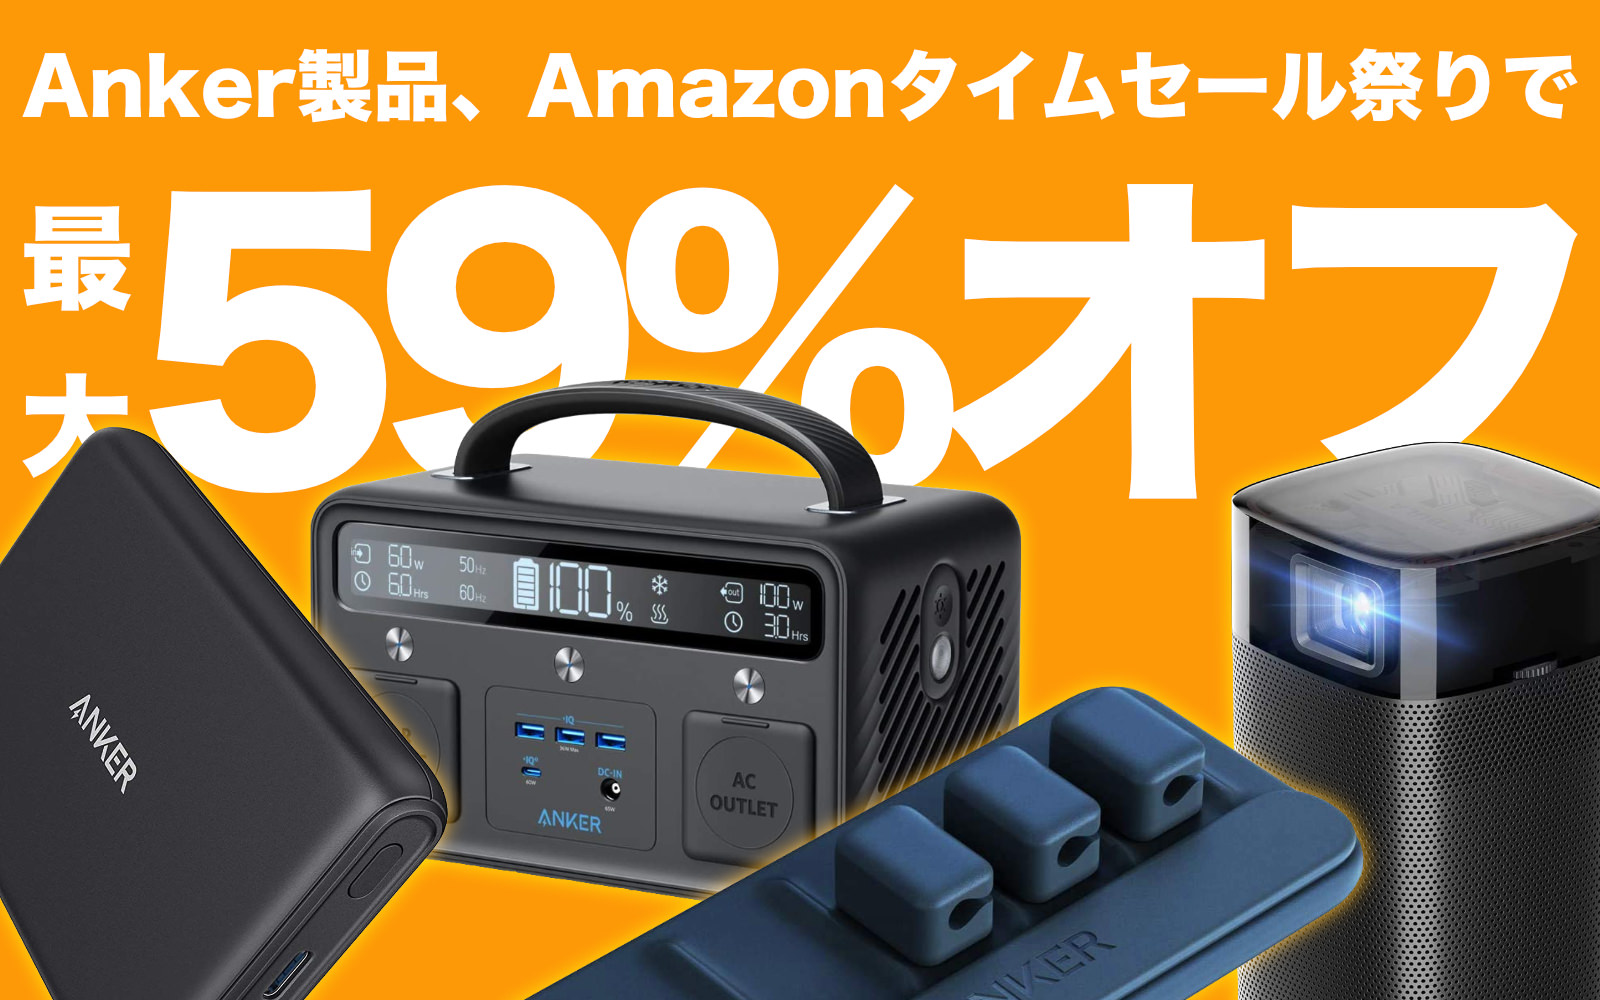 Anker Products AmazonTimeSaleFes202108